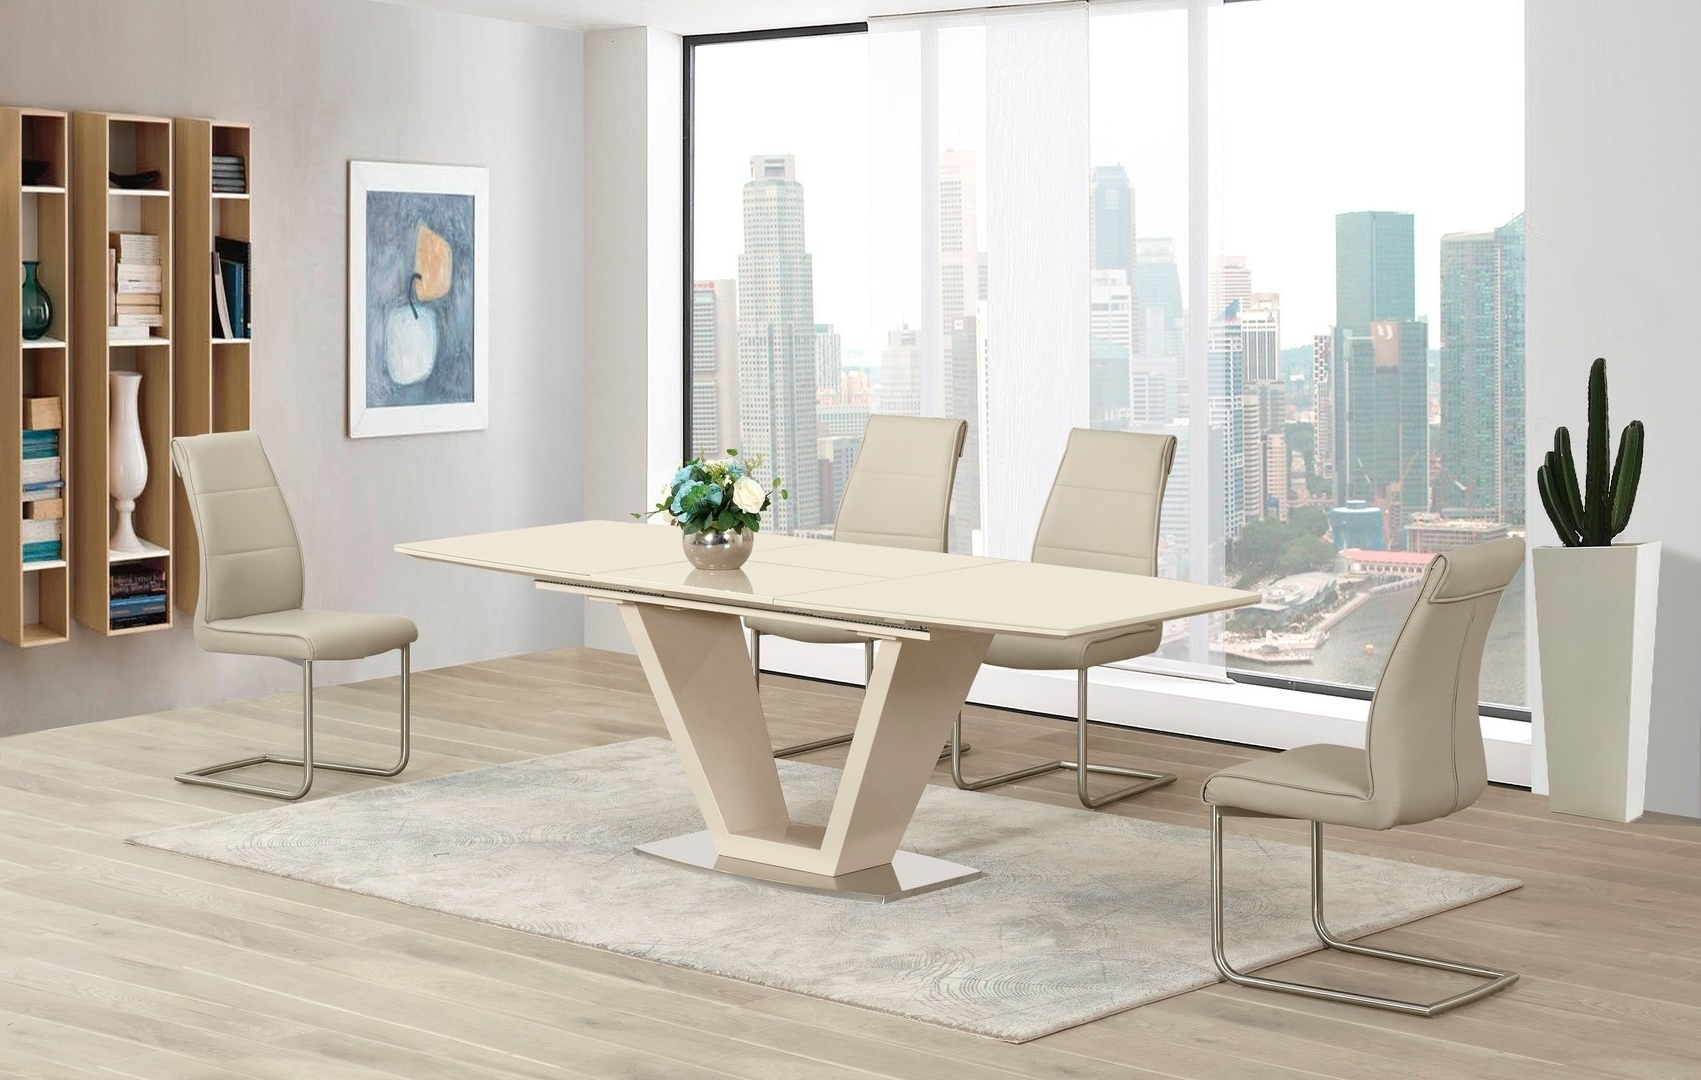 Cream Gloss Dining Tables And Chairs With Well Known Cream Extending Glass High Gloss Dining Table And 4 Taupe Chairs Set (Gallery 7 of 25)